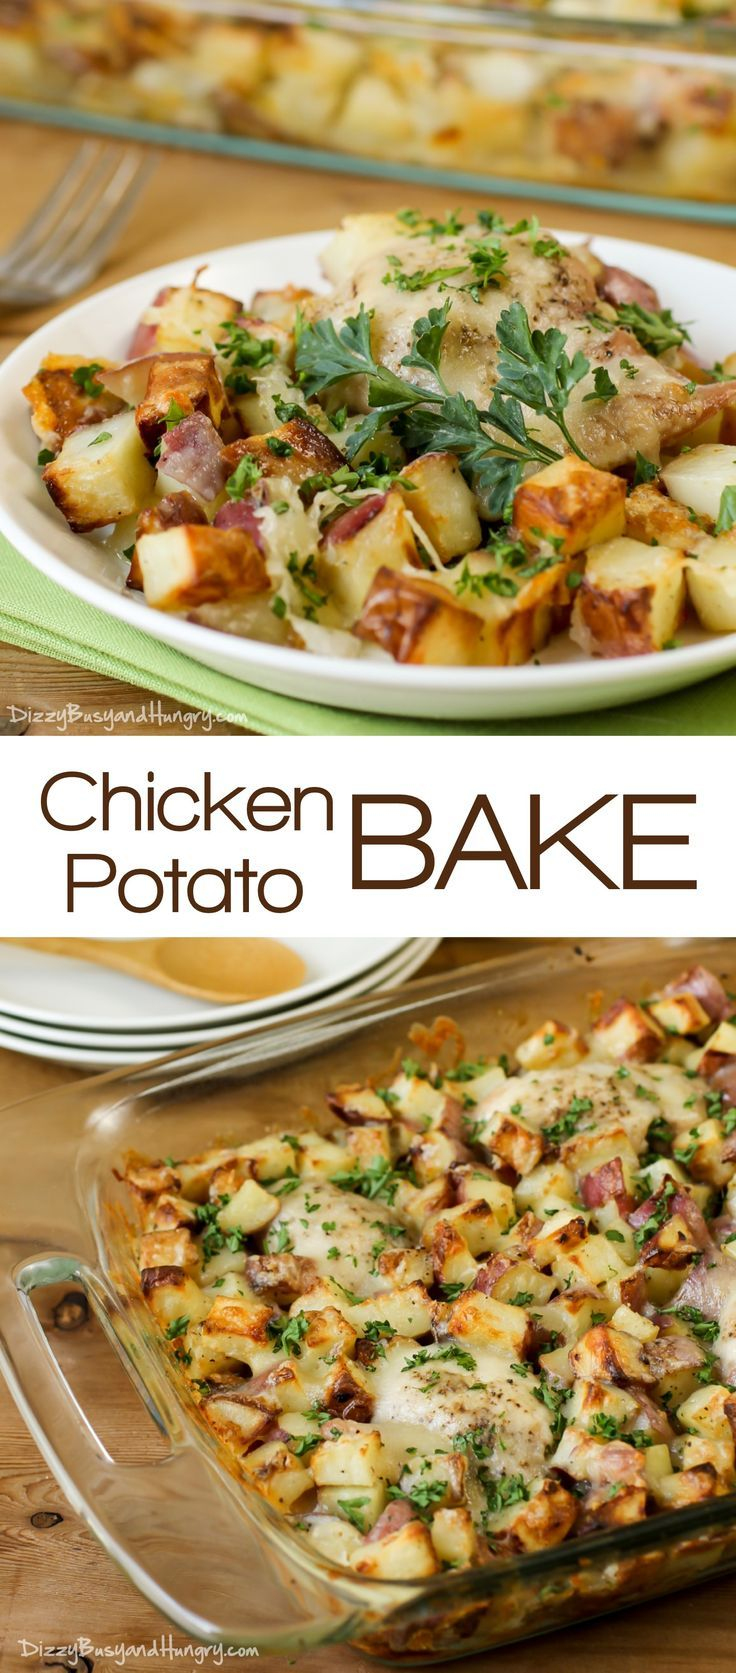 Chicken Potato Bake  - Potatoes tossed in garlic and olive oil and baked to a golden brown with tender, juicy chicken thighs. A family favorite!